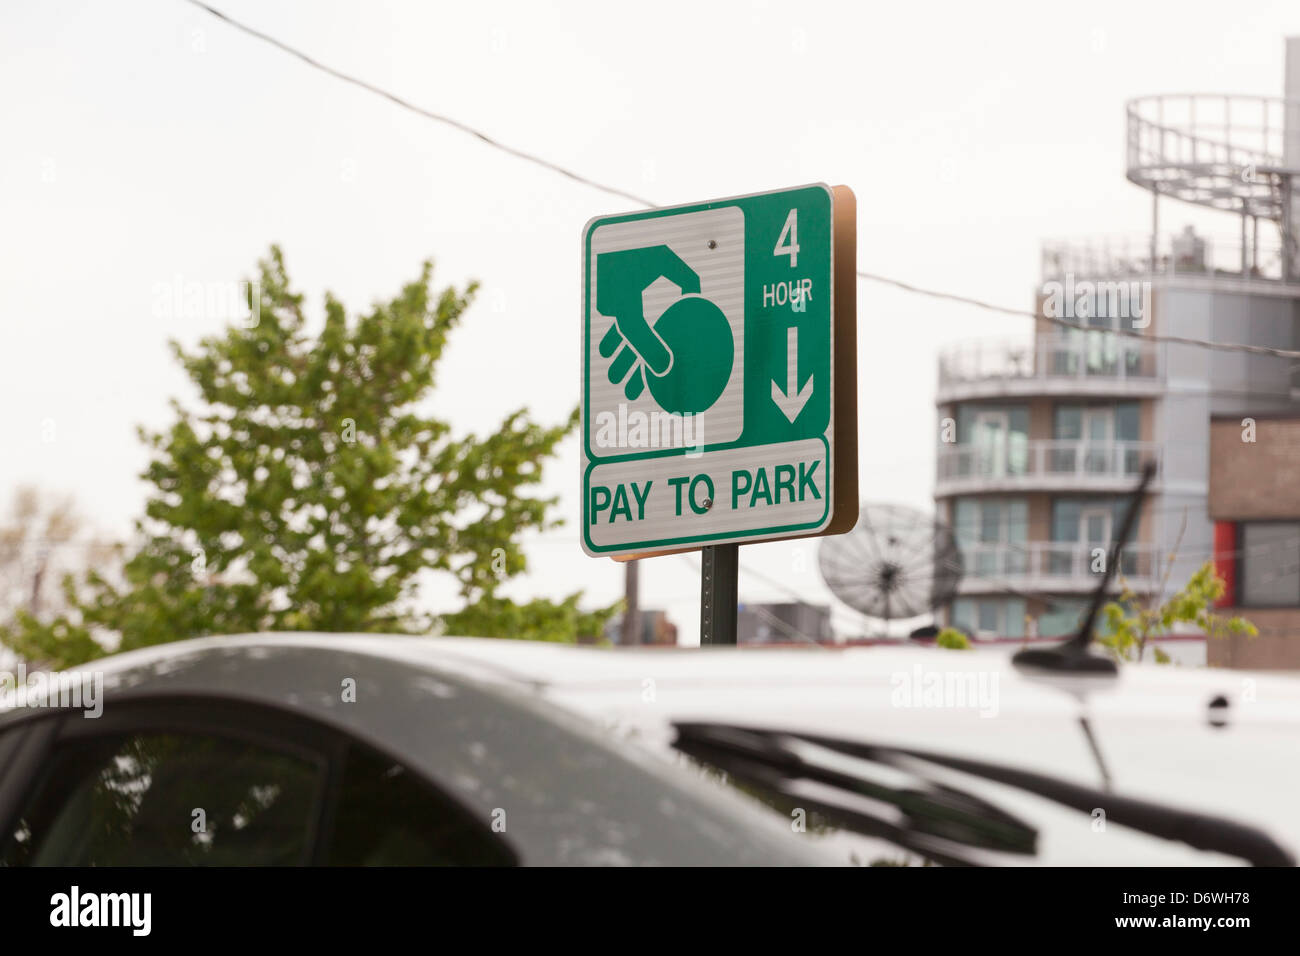 Pay to Park sign - Stock Image